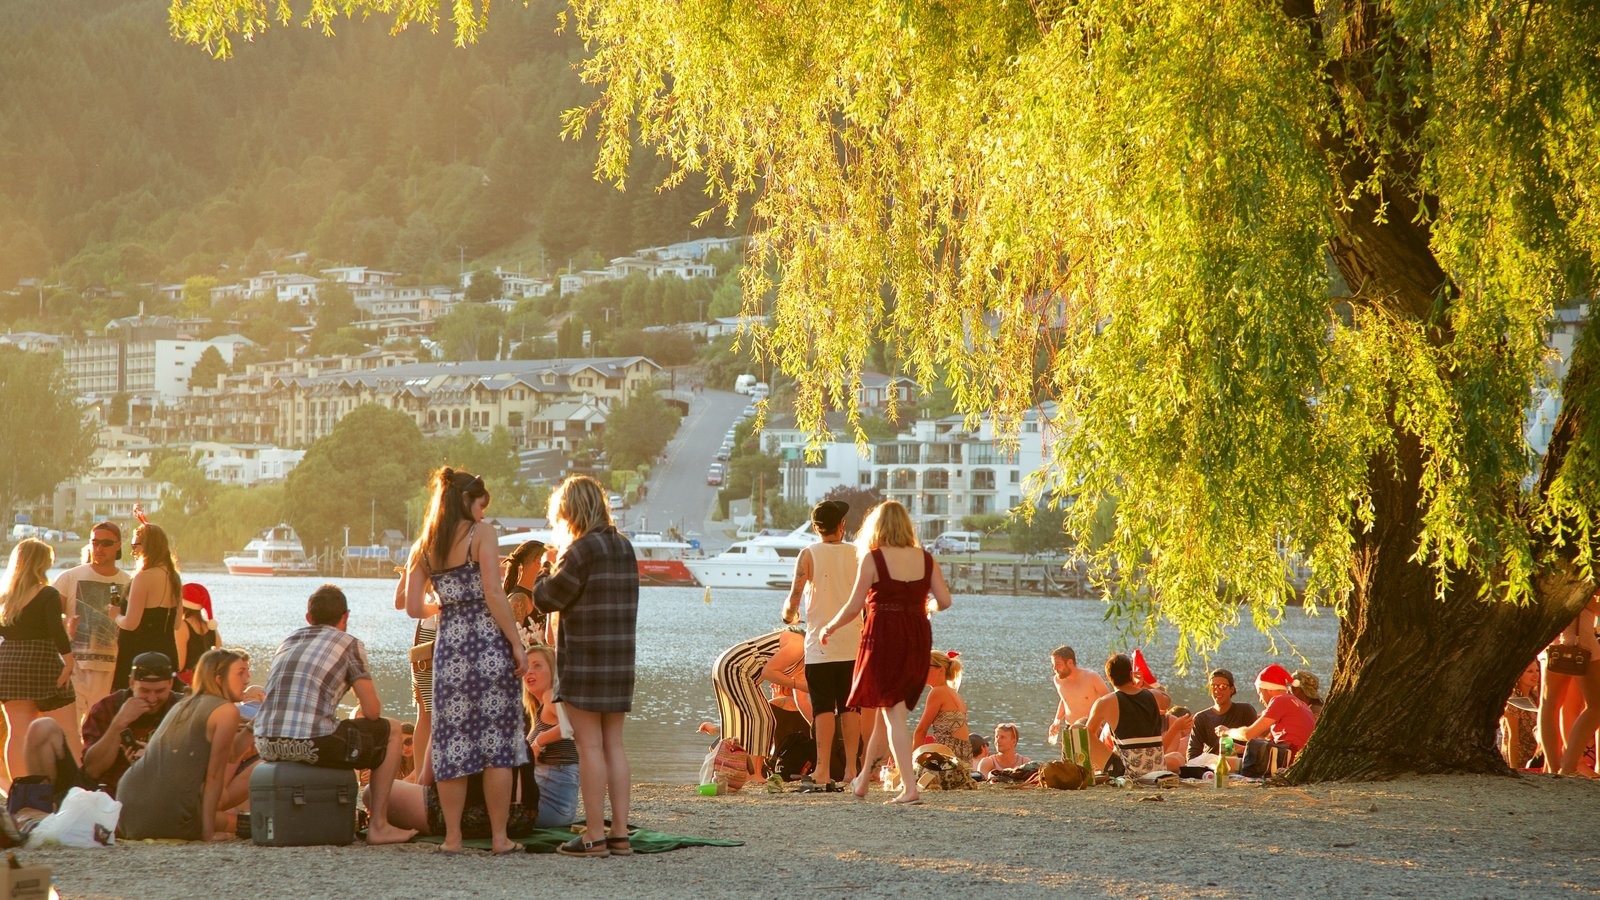 Queenstown Beach showing a pebble beach, a sunset and a small town or village